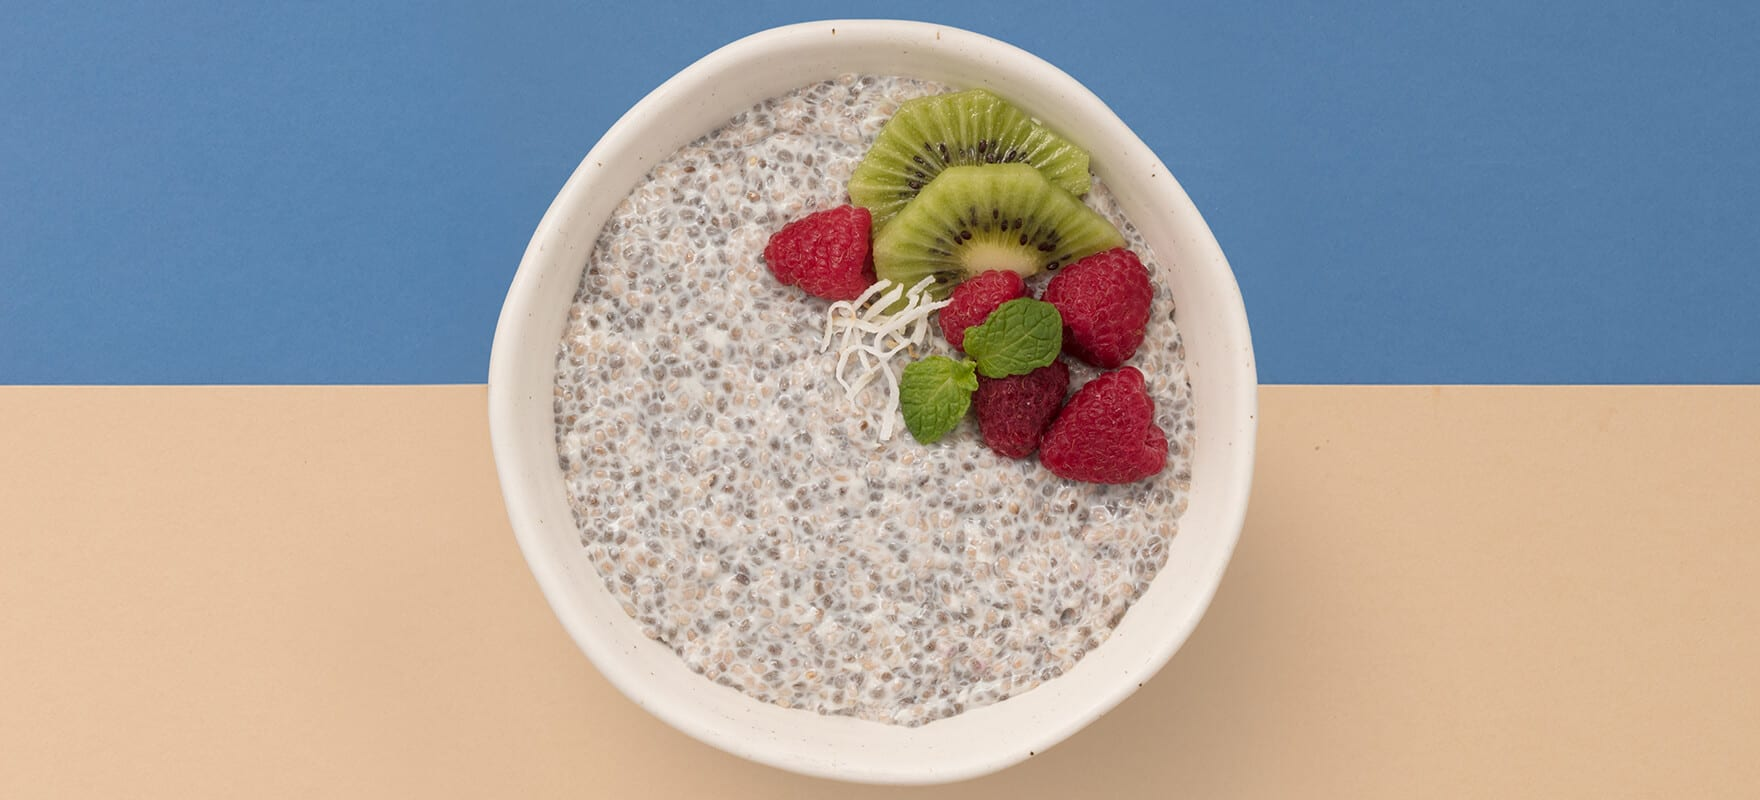 Raspberry & coconut chia pudding breakfast bowl image 1